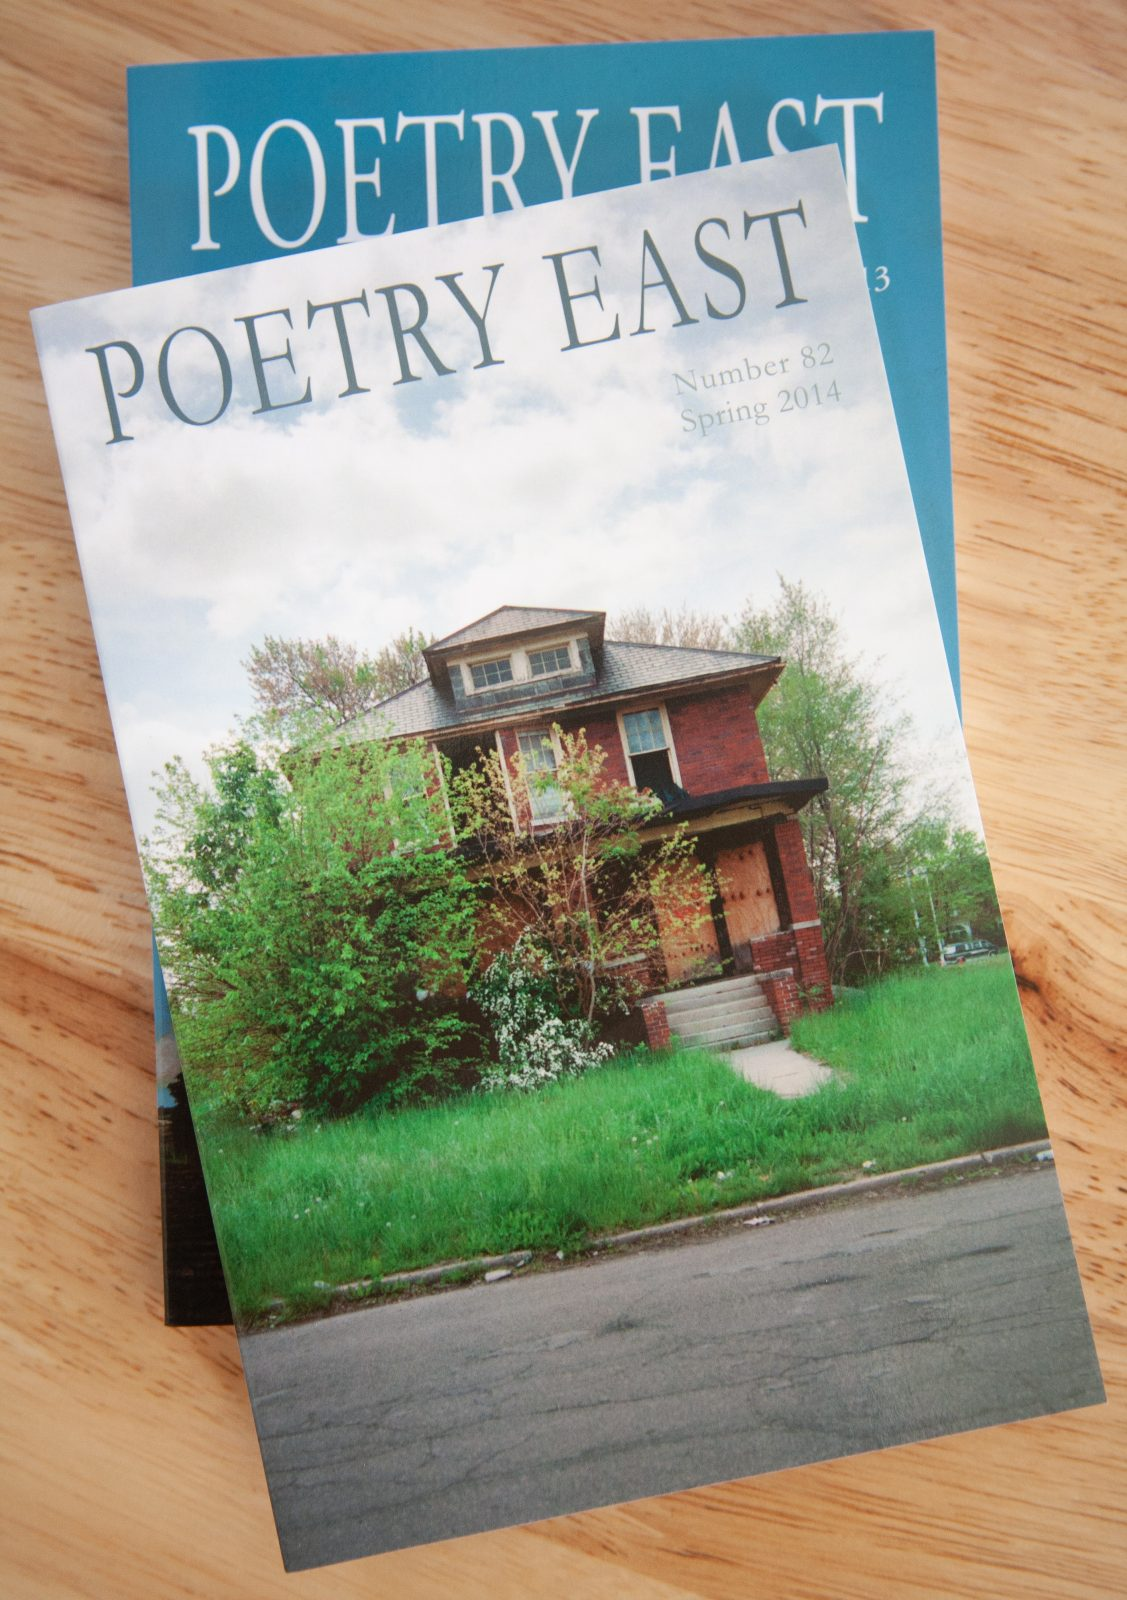 Poetry East abandoned houses